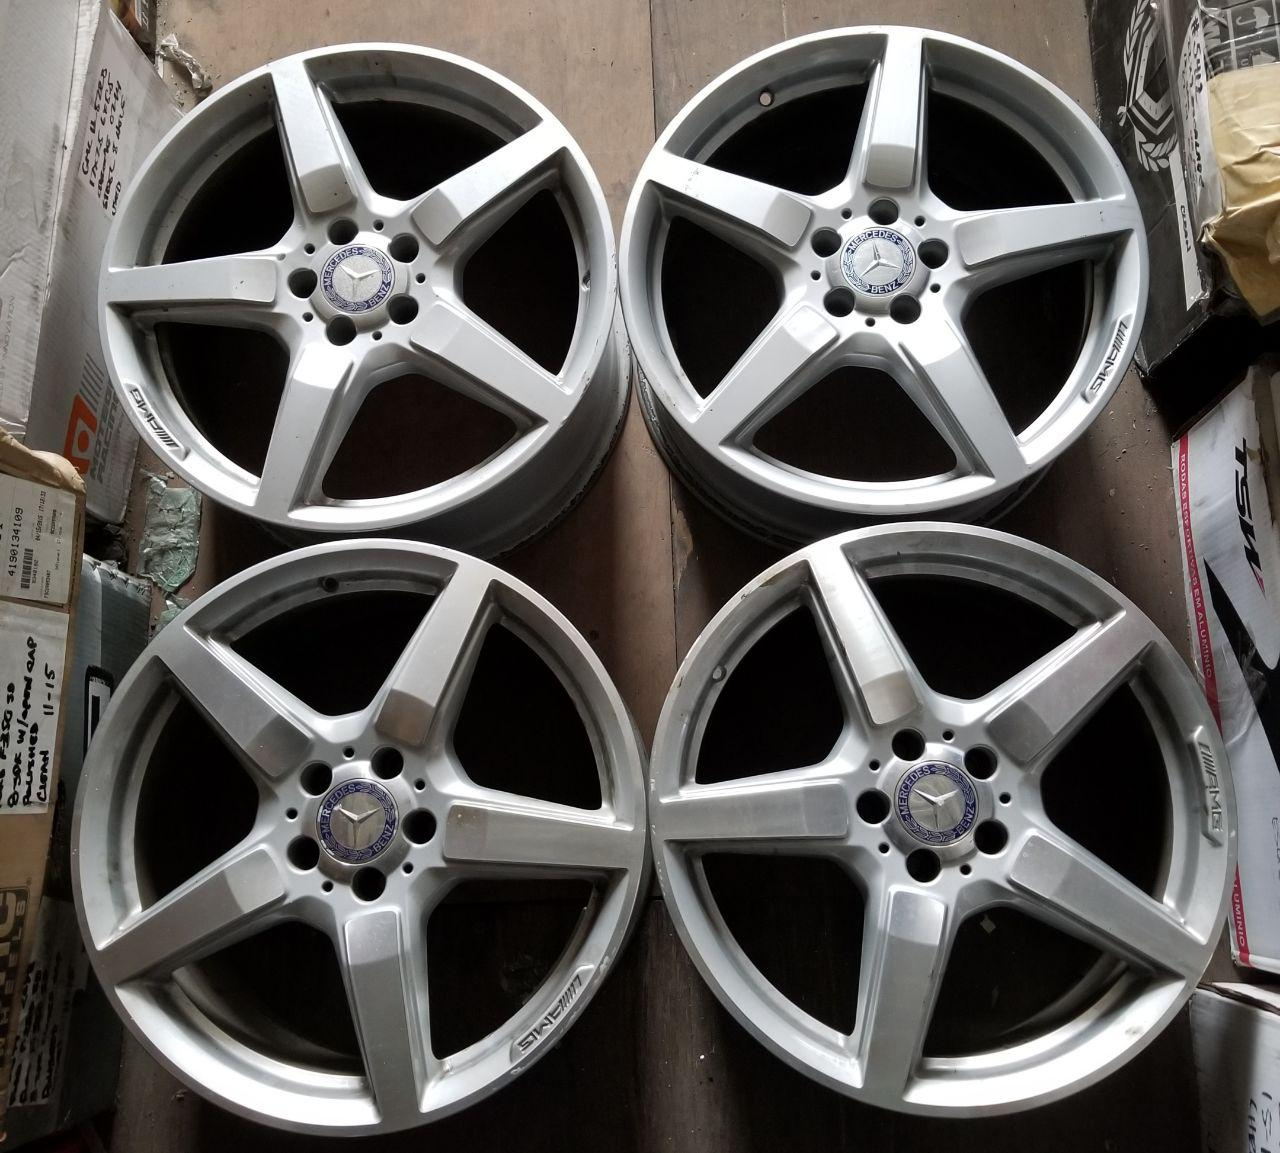 - OEM WHEELS - 2012-2014 MERCEDES CLS500 AMG 19x9.5 5 SPOKE Hollander #85256 /  USED